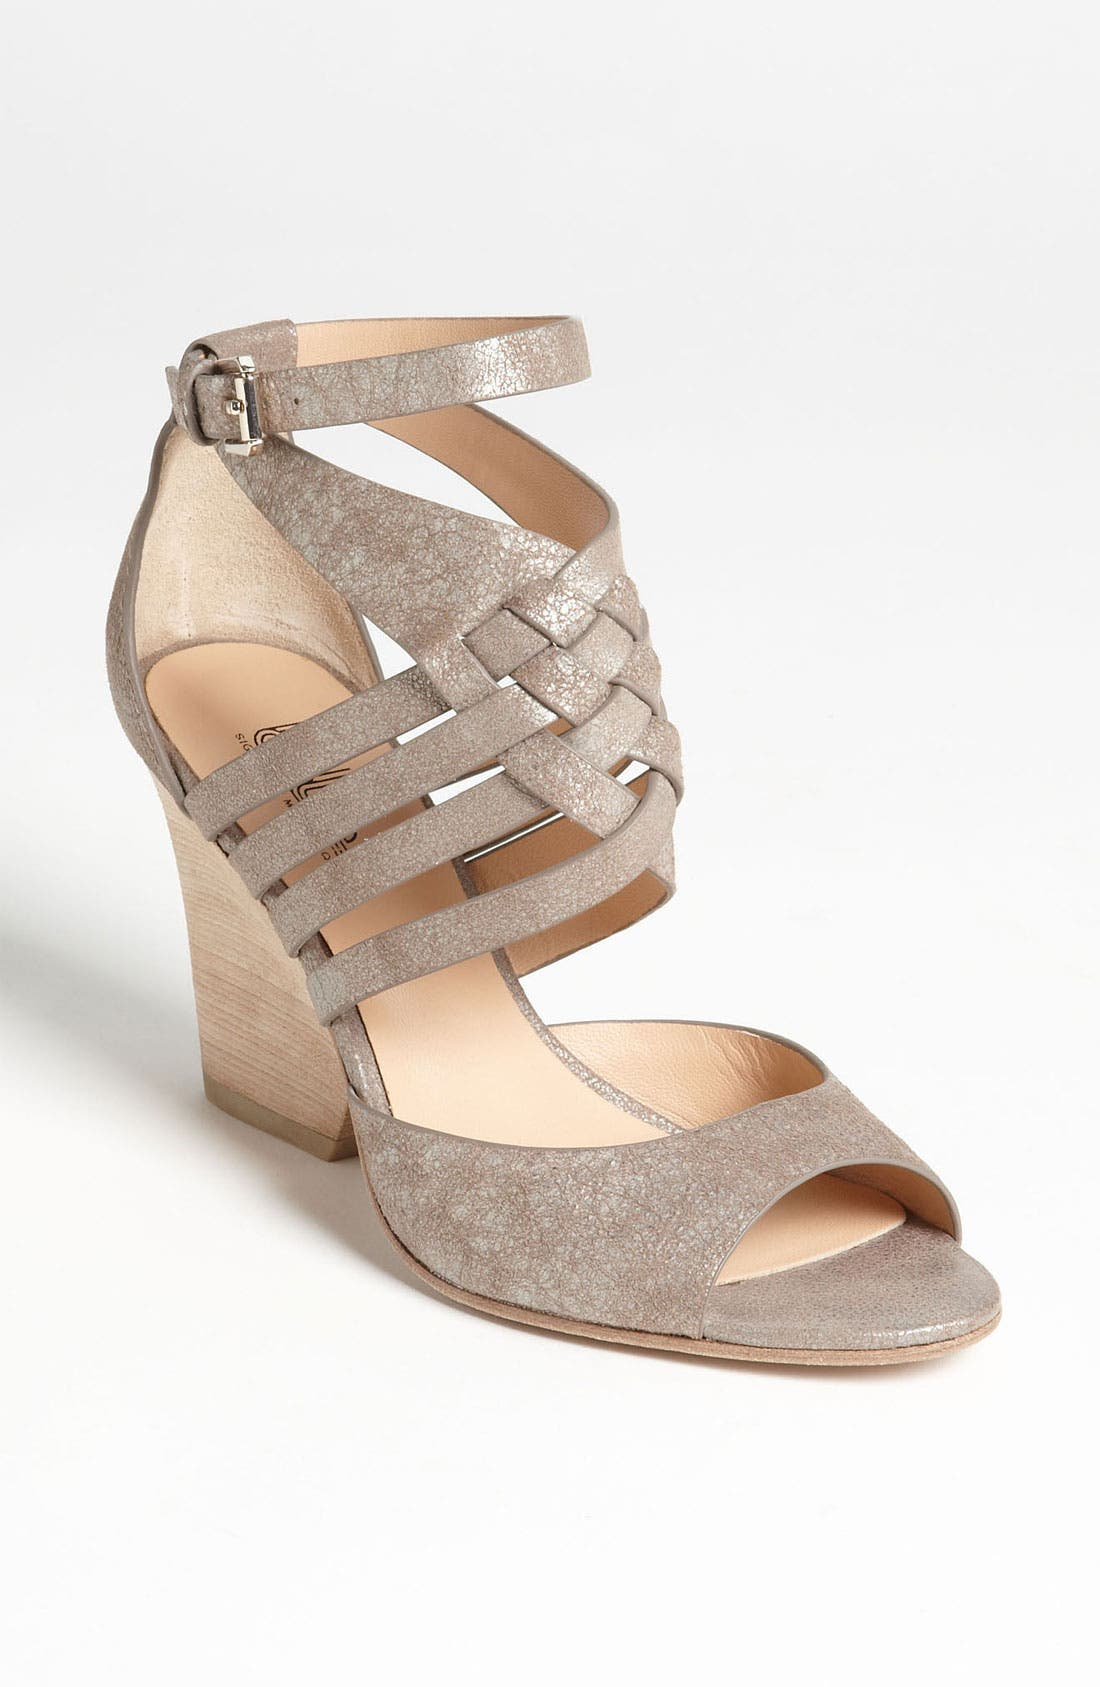 Main Image - Belle by Sigerson Morrison 'Daisy' Sandal